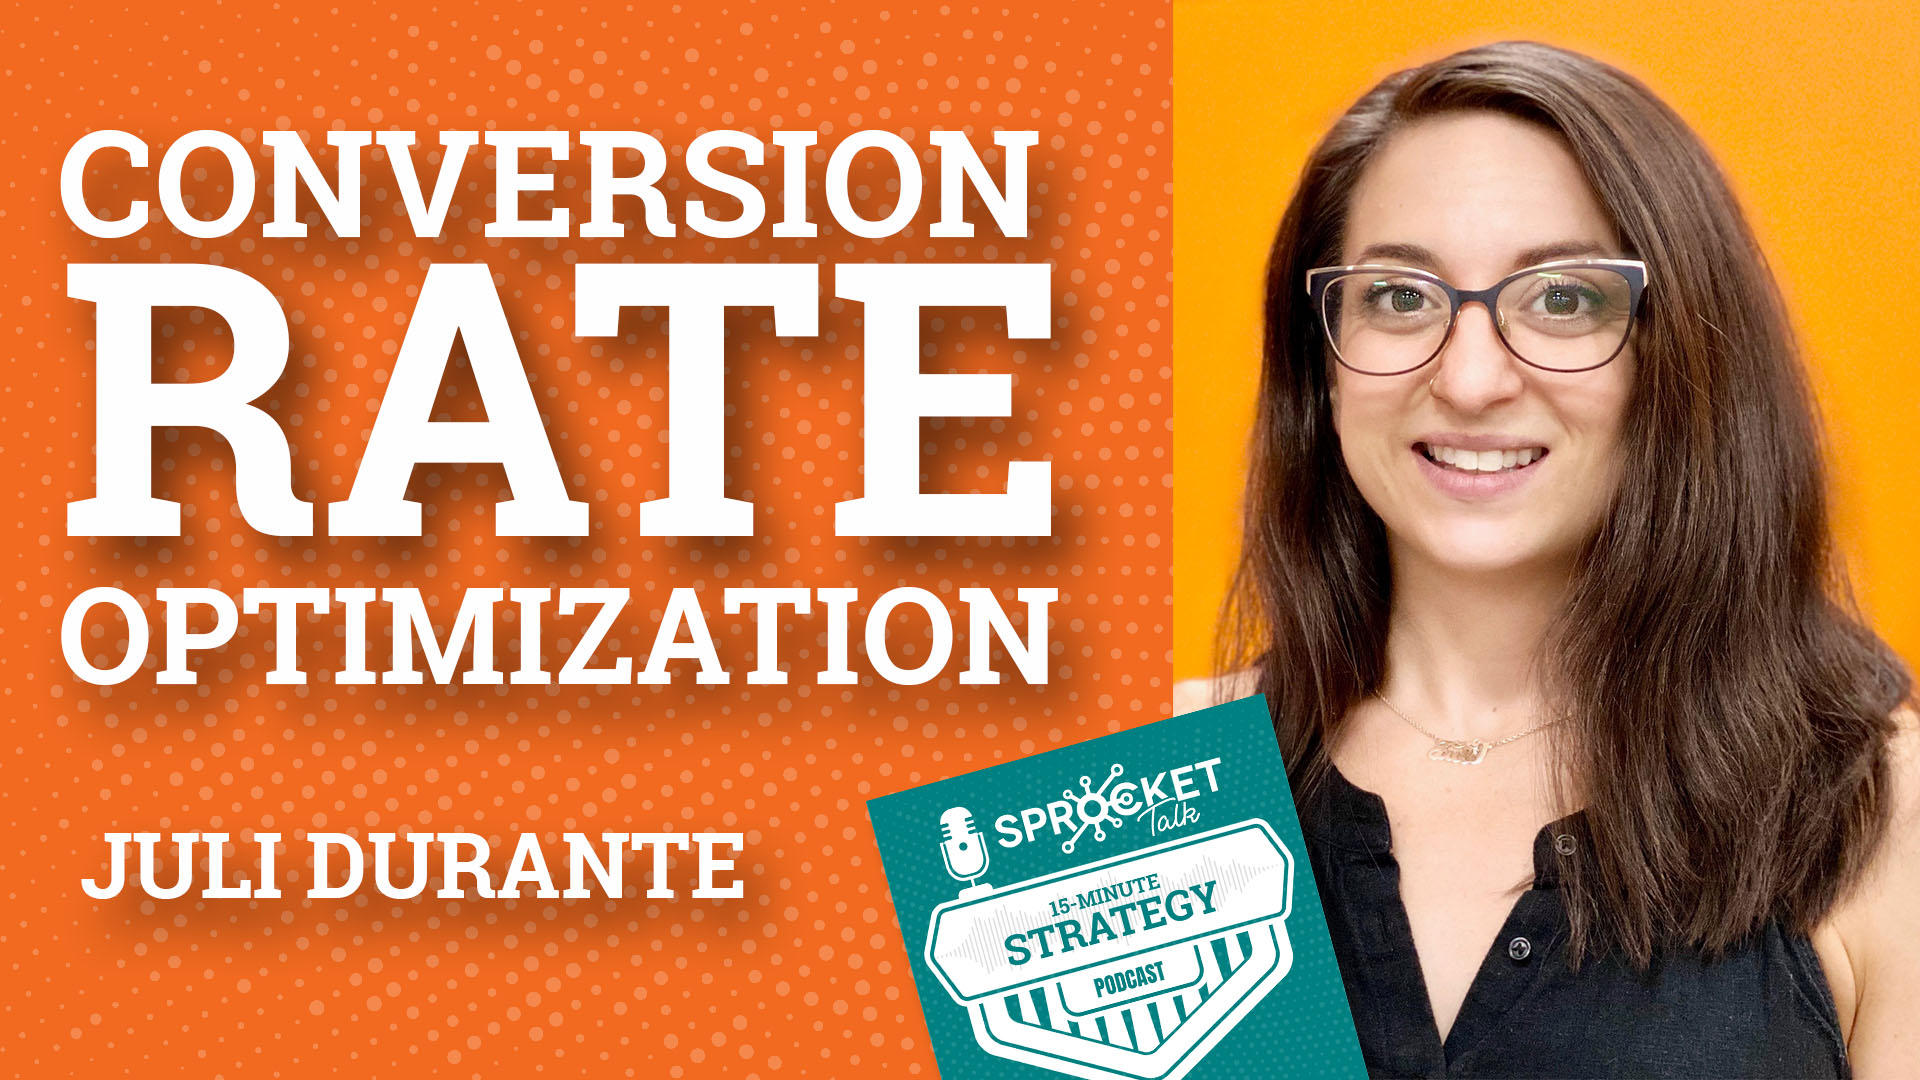 Juli Durante on Conversion Rate Optimization a 2020 Marketing Strategy | 15-Minute Strategy Podcast